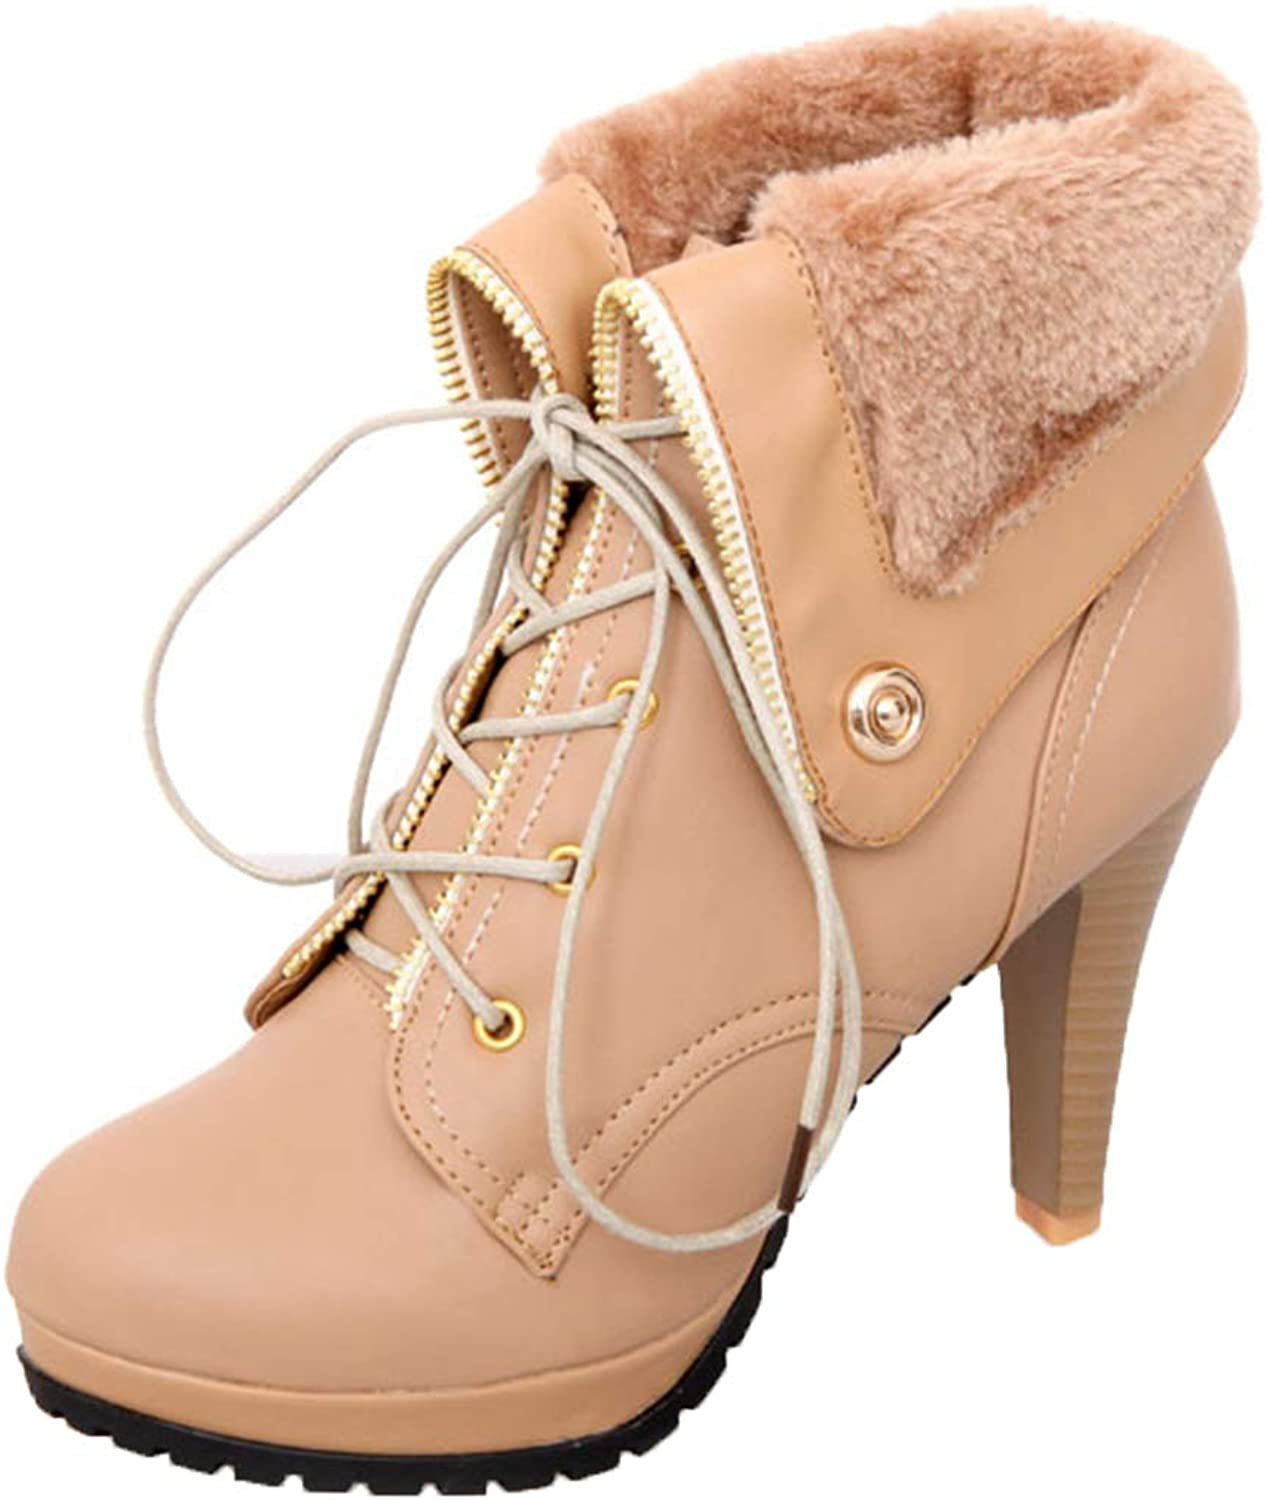 Vitalo Womens Lace Up High Heel Platform Ankle Boots Fold Over Winter Snow Booties